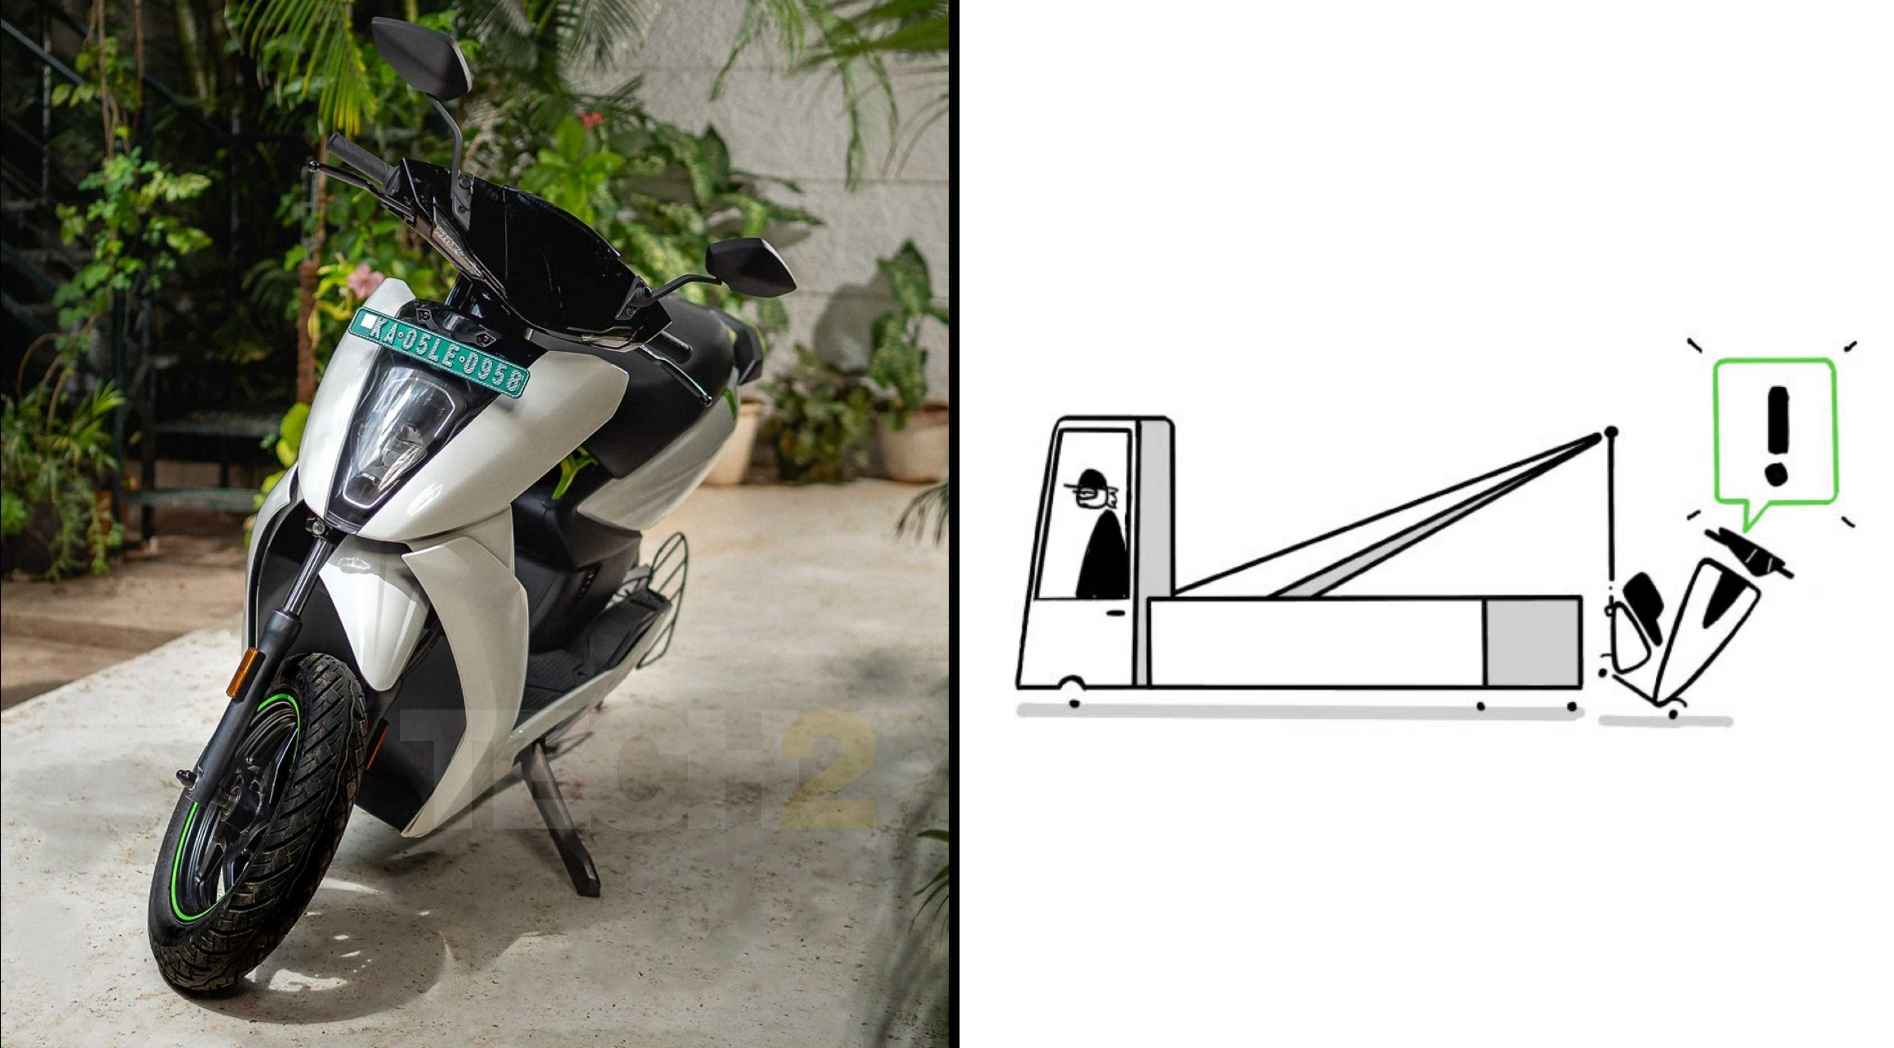 Theft and tow detection is being added to Ather's electric scooters, but only for those who have subscribed to the Connect Pro plan. Image: Ather Energy